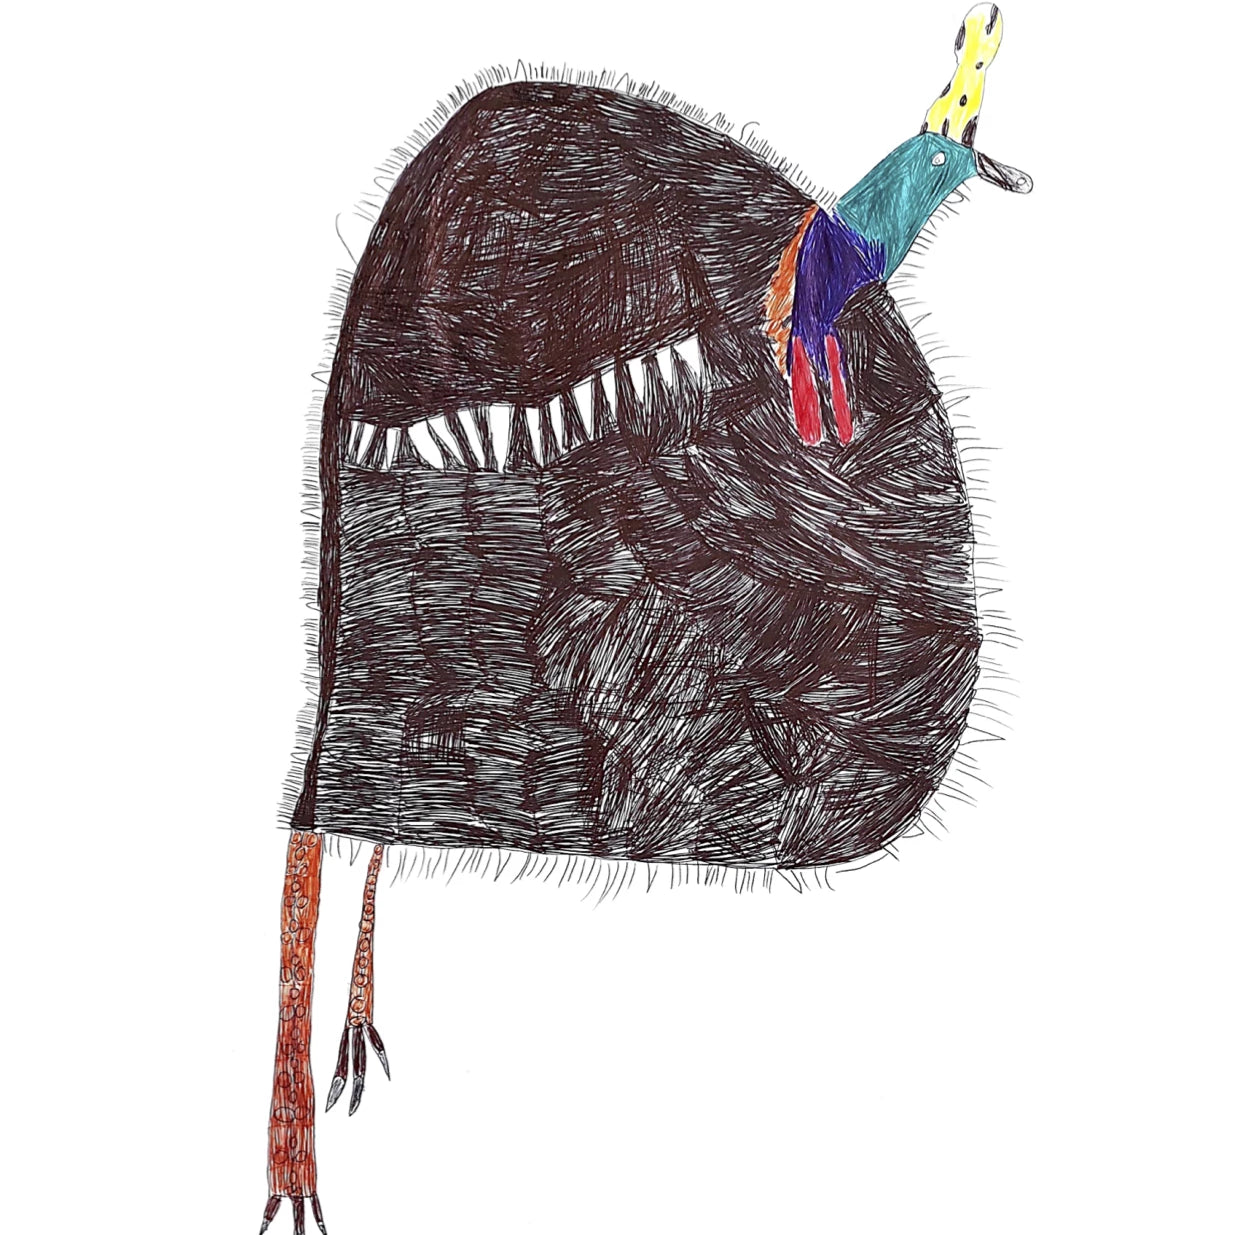 Cassowary by Sally Exhibition Print